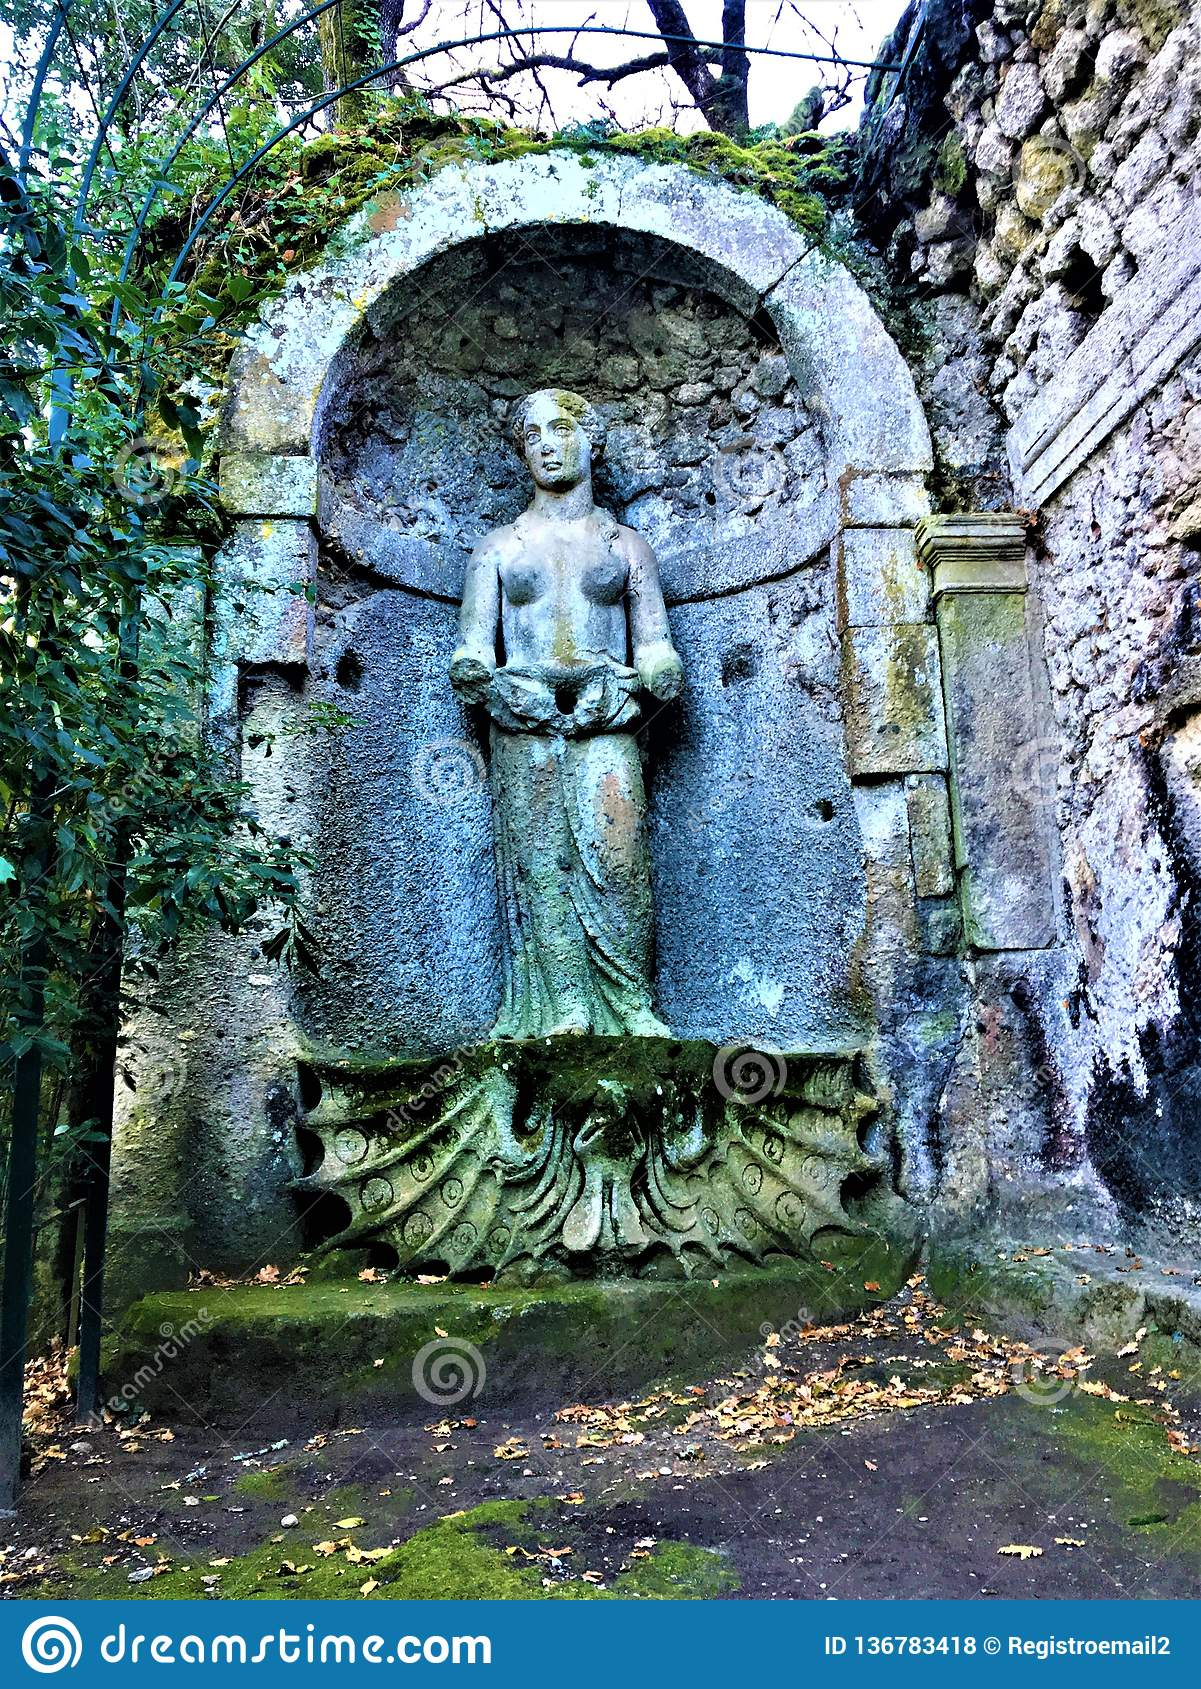 Park of the Monsters, Sacred Grove, Garden of Bomarzo. Aphrodite and beauty